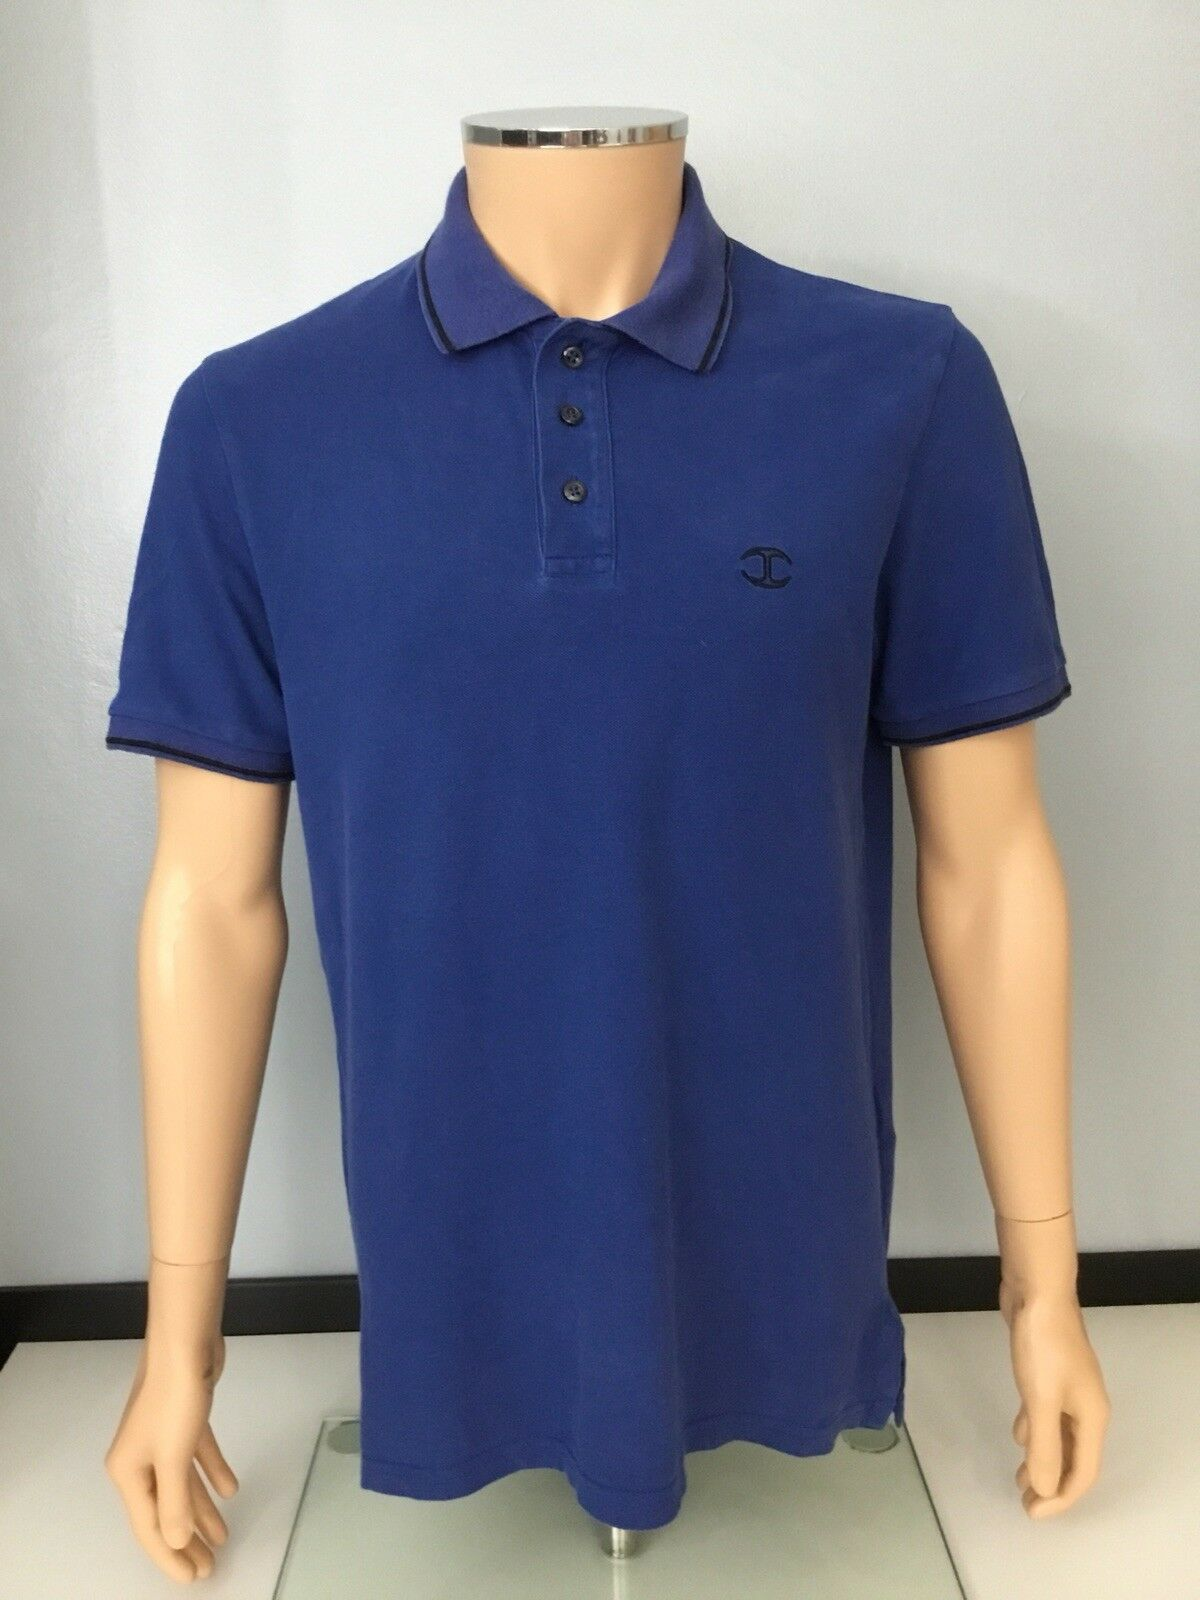 b4a823a9 Just Cavalli Mens Roberto Cavalli Polo Collared Top Short Sleeve bluee Size  L Vgc